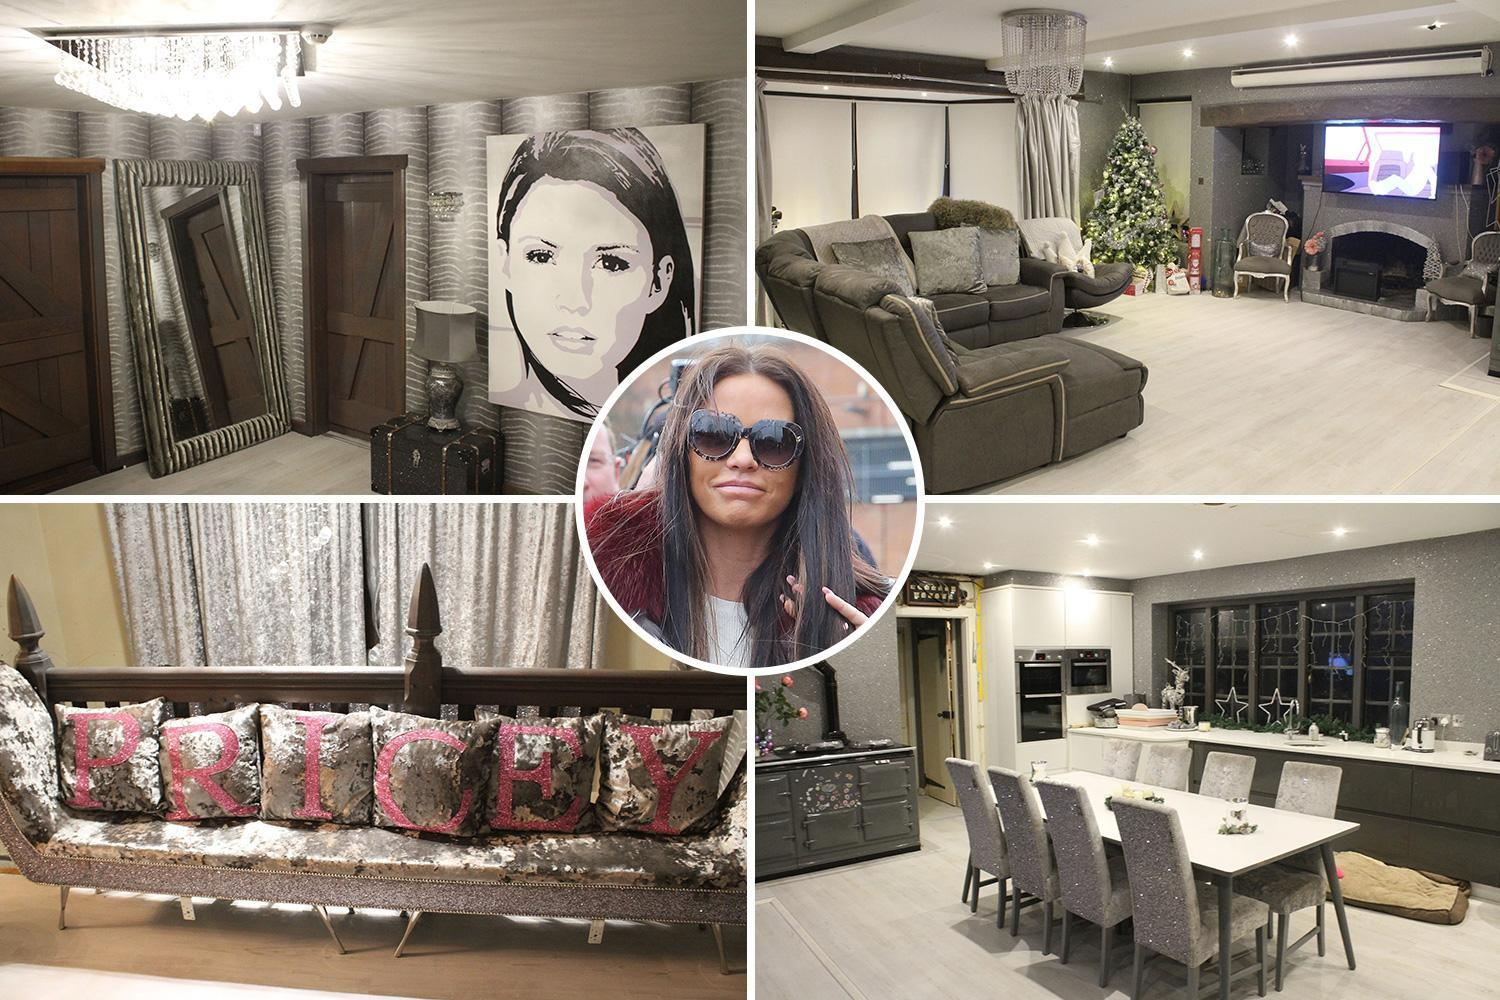 Katie Price spruces up her mucky mansion as she shows off lavish decor with crystal lights and a huge portrait